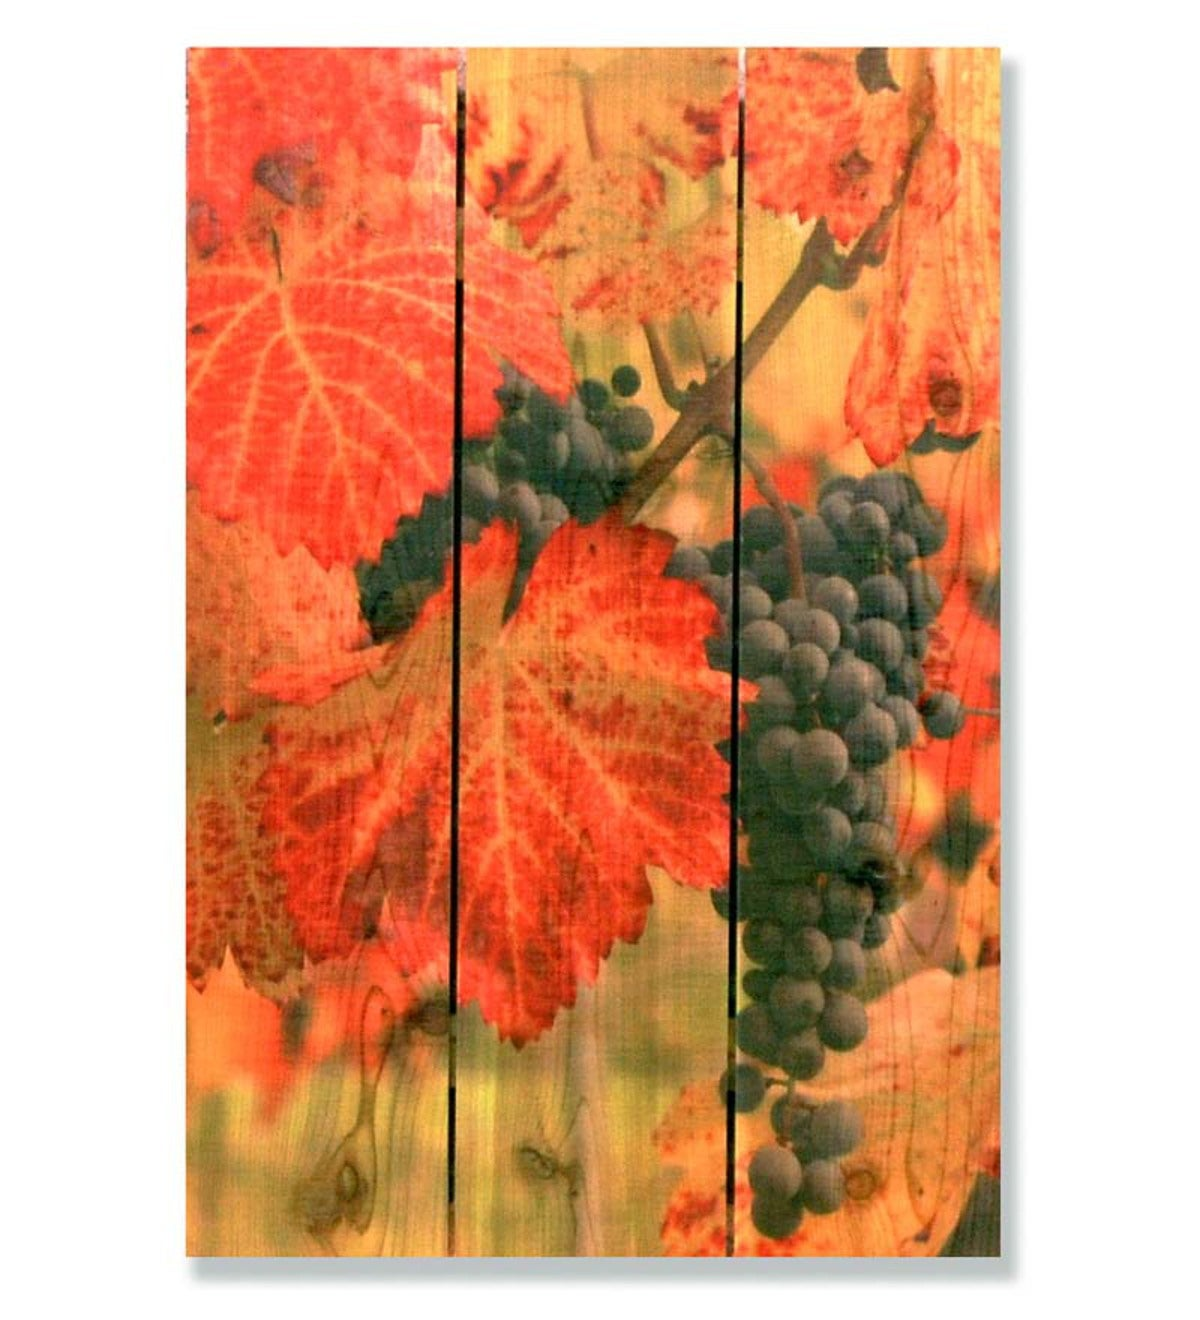 Handcrafted Summer Harvest Wooden Wall Art by Gizaun Art™